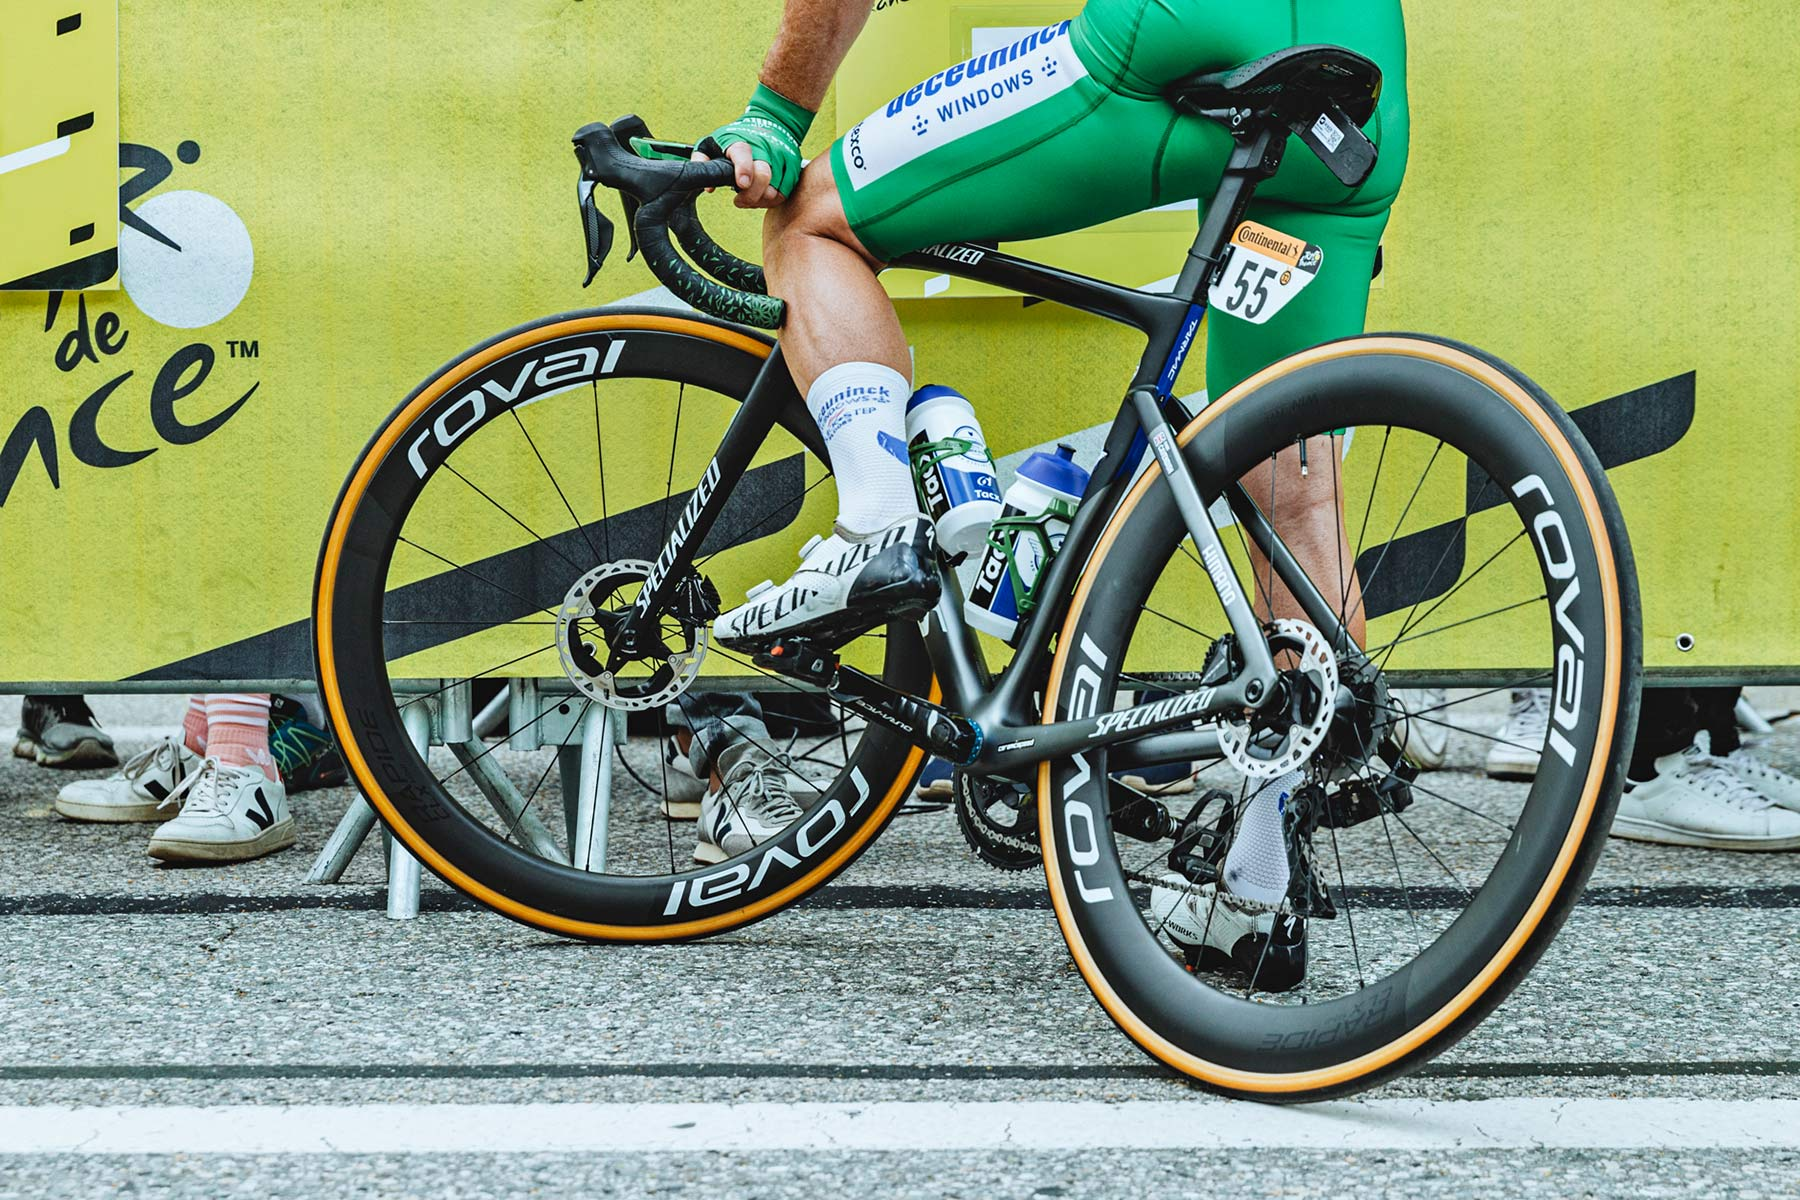 2021 Mark Cavendish 3x Tour de France stage winning green sprinter jersey Specialized S-Works Tarmac SL7, photo by Chris Auld